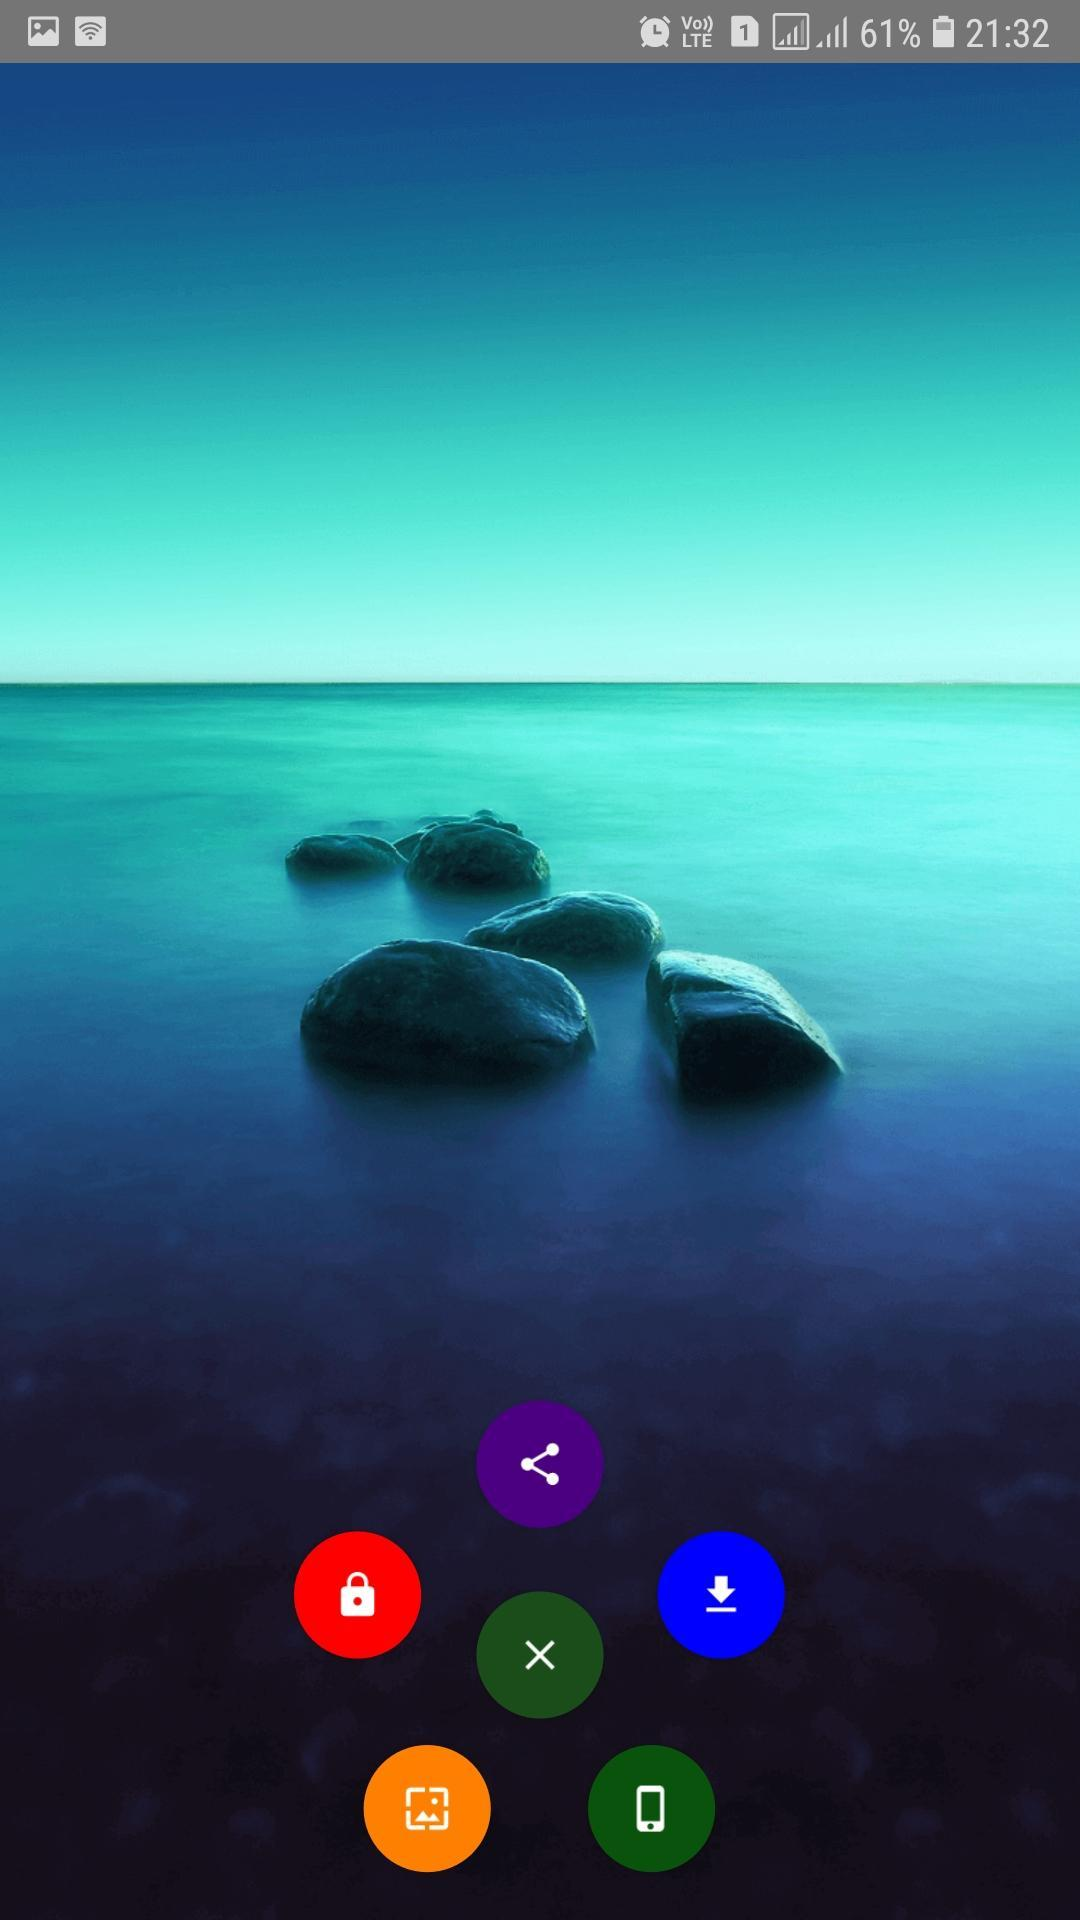 Wallpaper For Huawei P8 9 10 20 30 40 Wallpapers For Android Apk Download